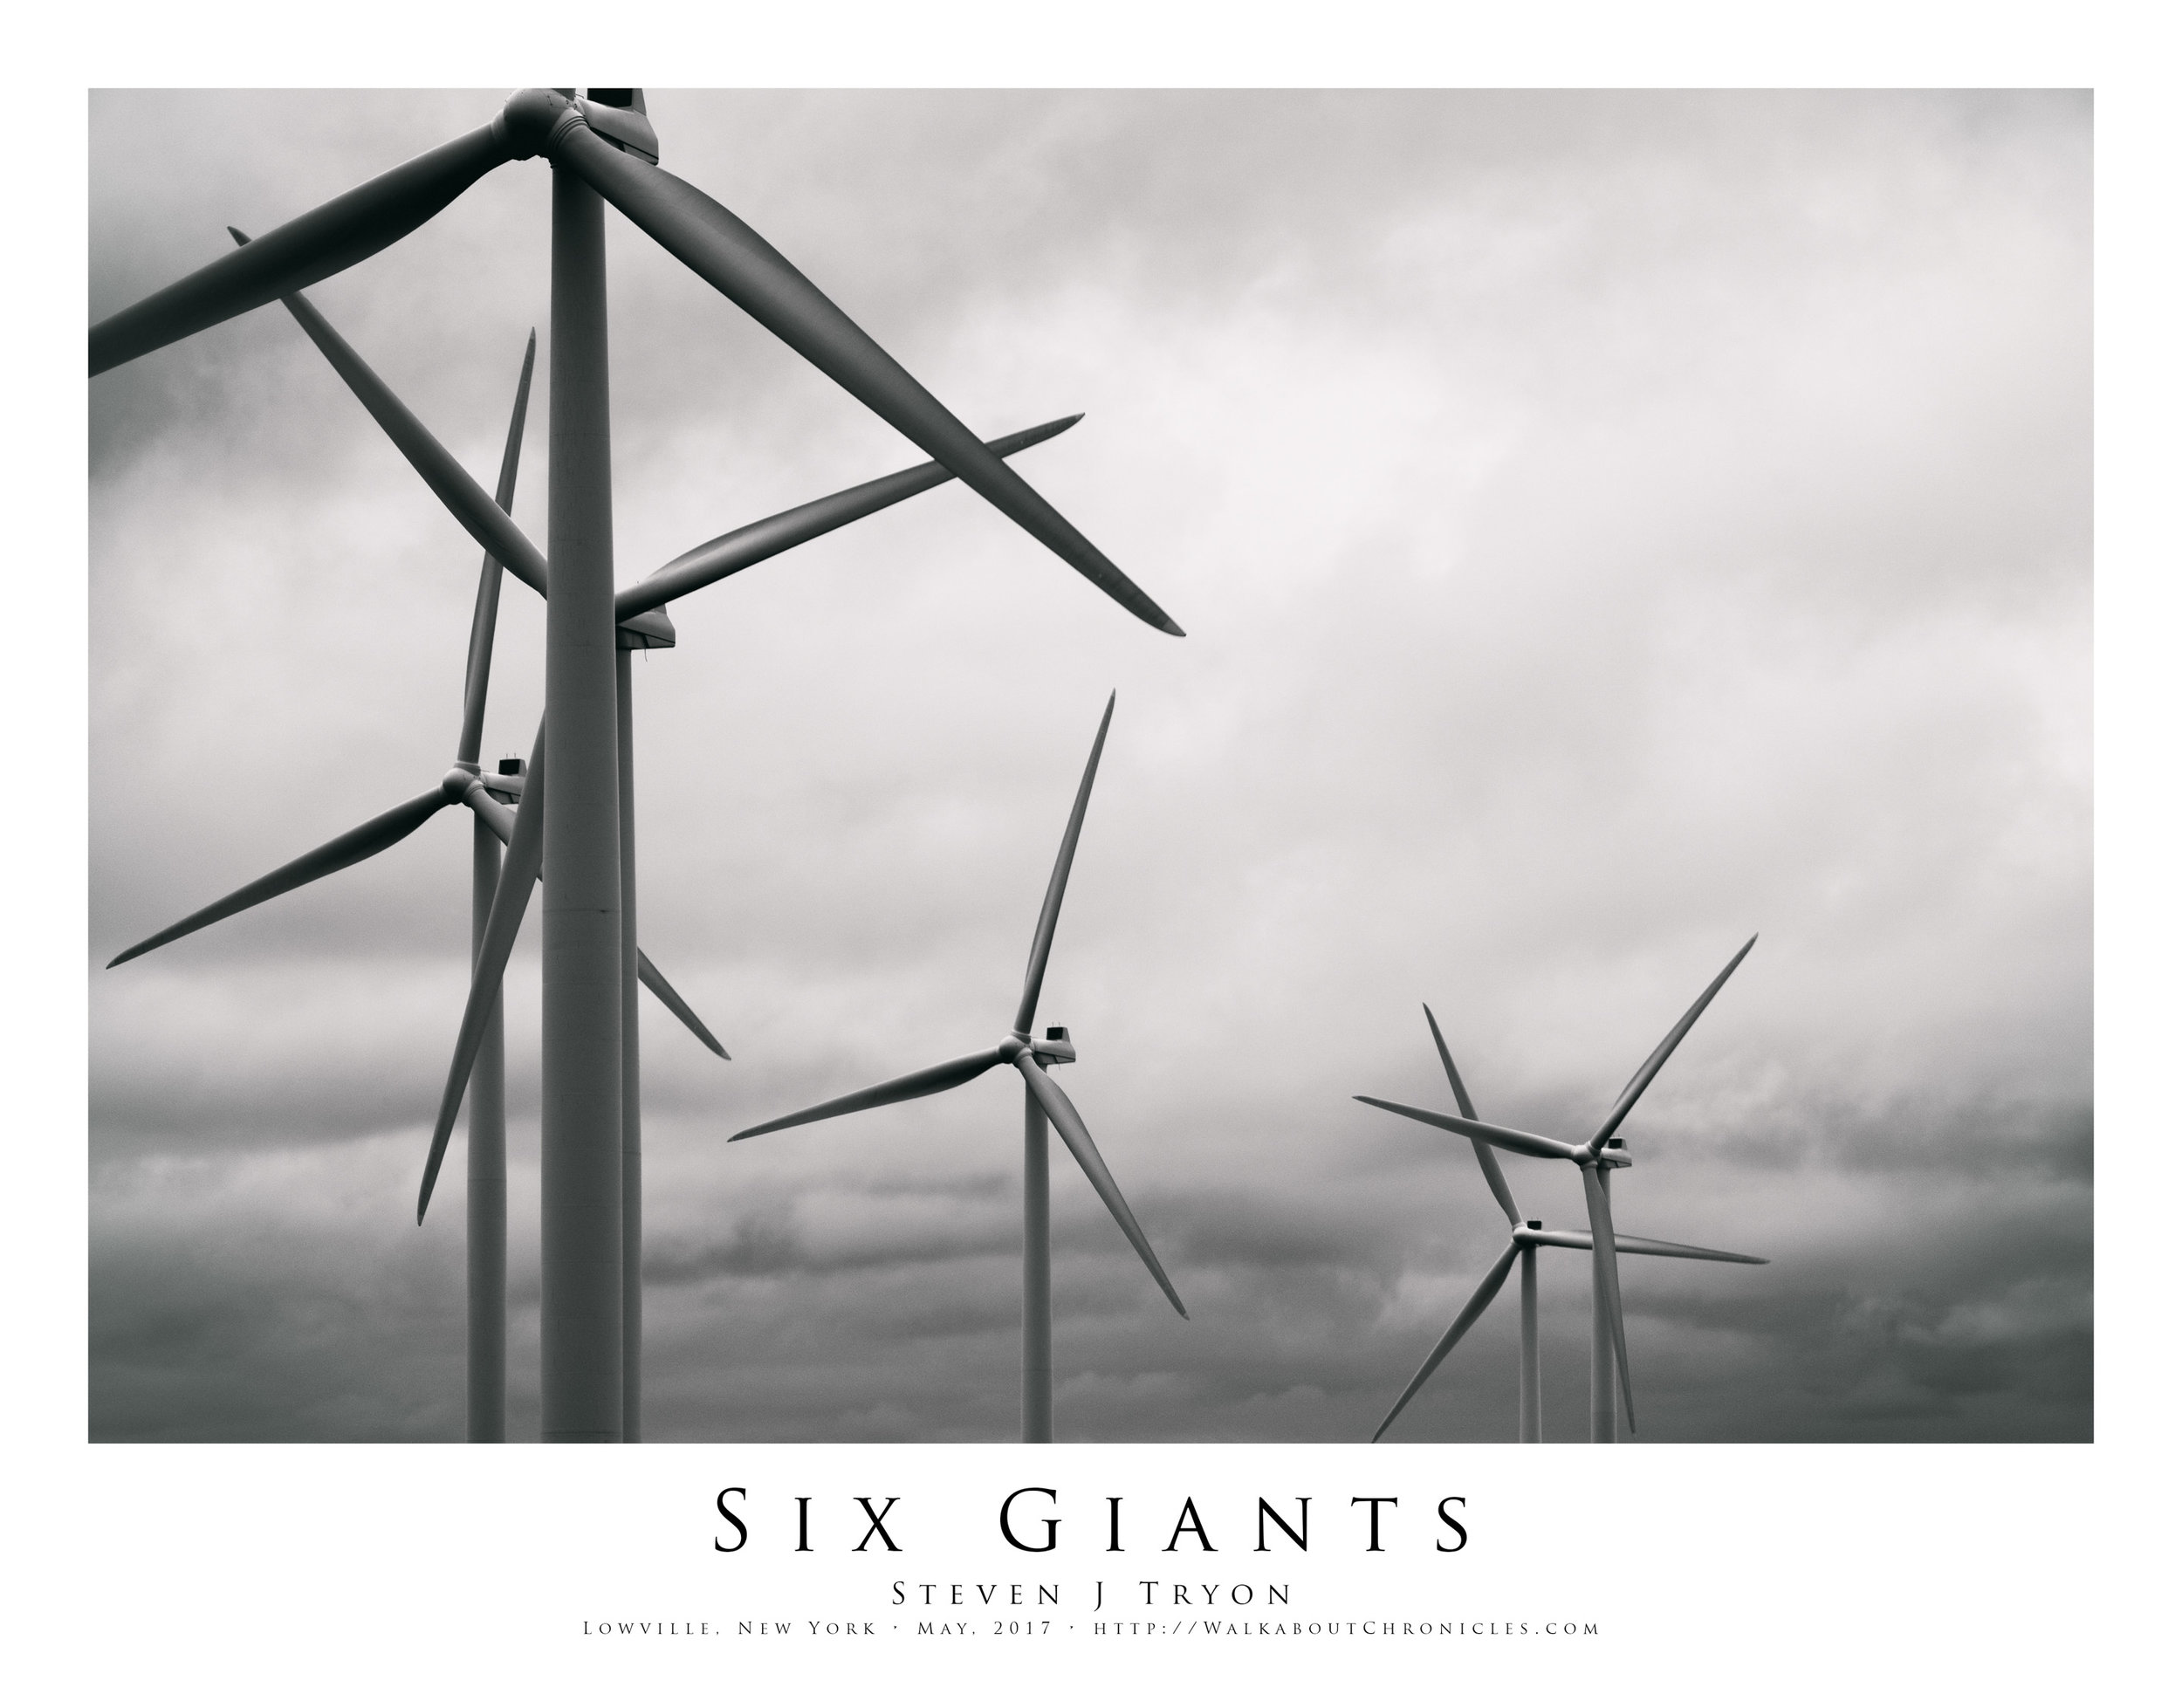 Six Giants